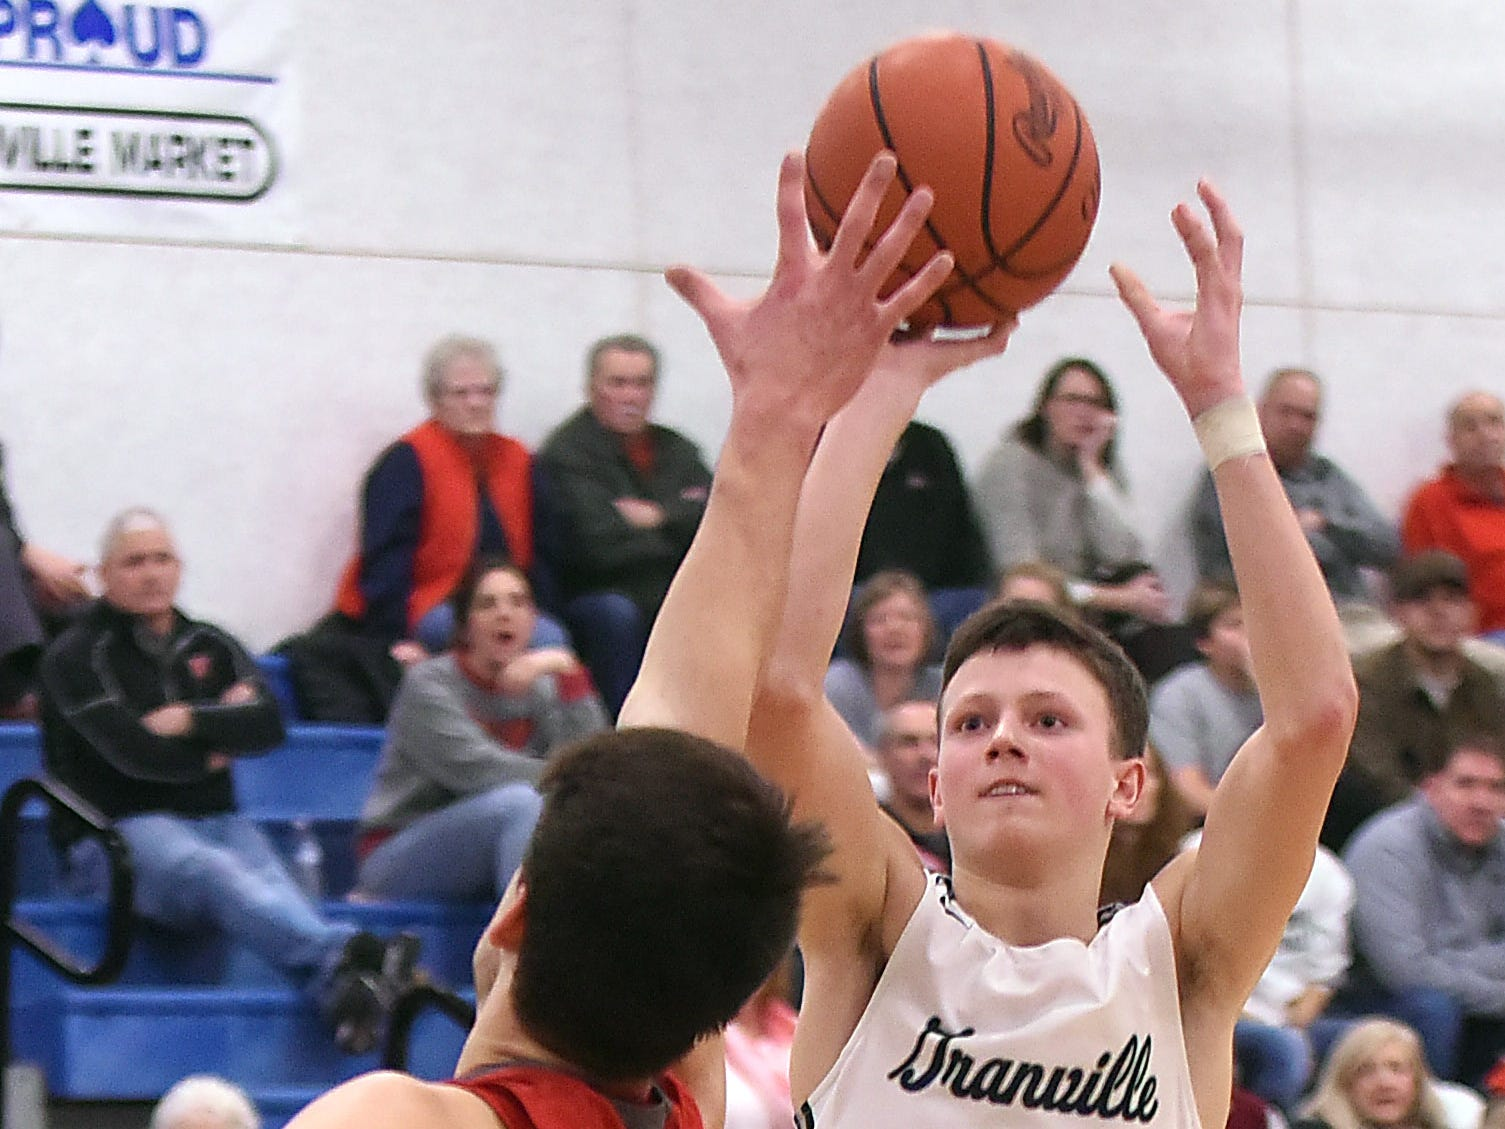 Granville defeated Johnstown 35-32 in double overtime on Wednesday, Jan. 16, 2019 at Granville High School.